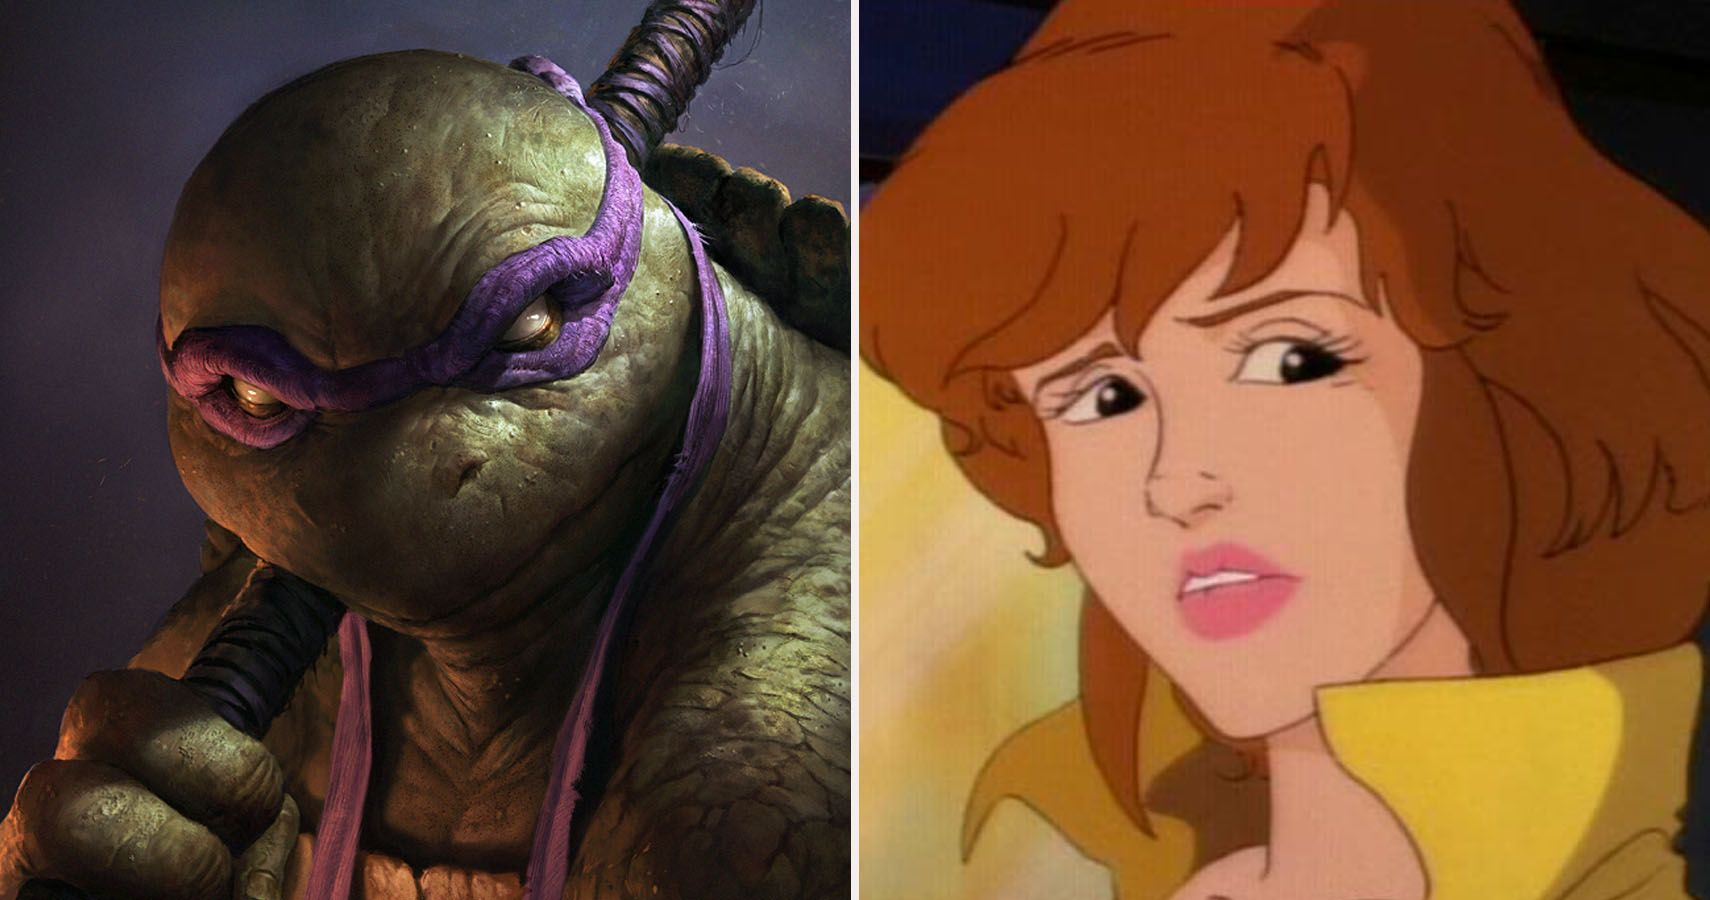 Disturbing Things That Make Teenage Mutant Ninja Turtles Too Scary